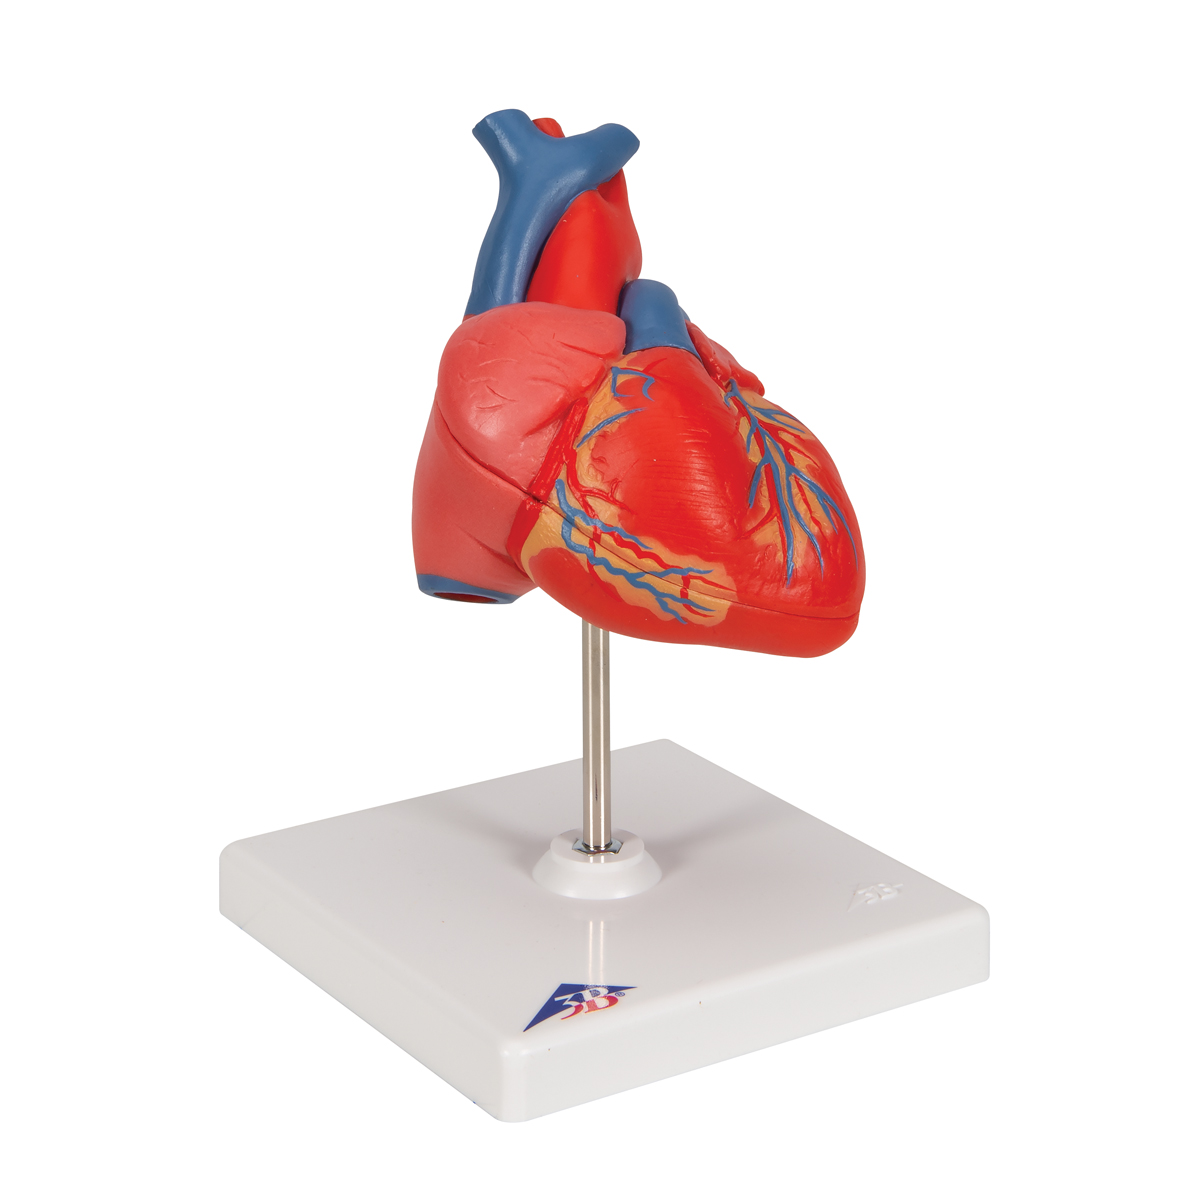 Anatomical Heart Model | Anatomy of the Heart | Classic Heart Model